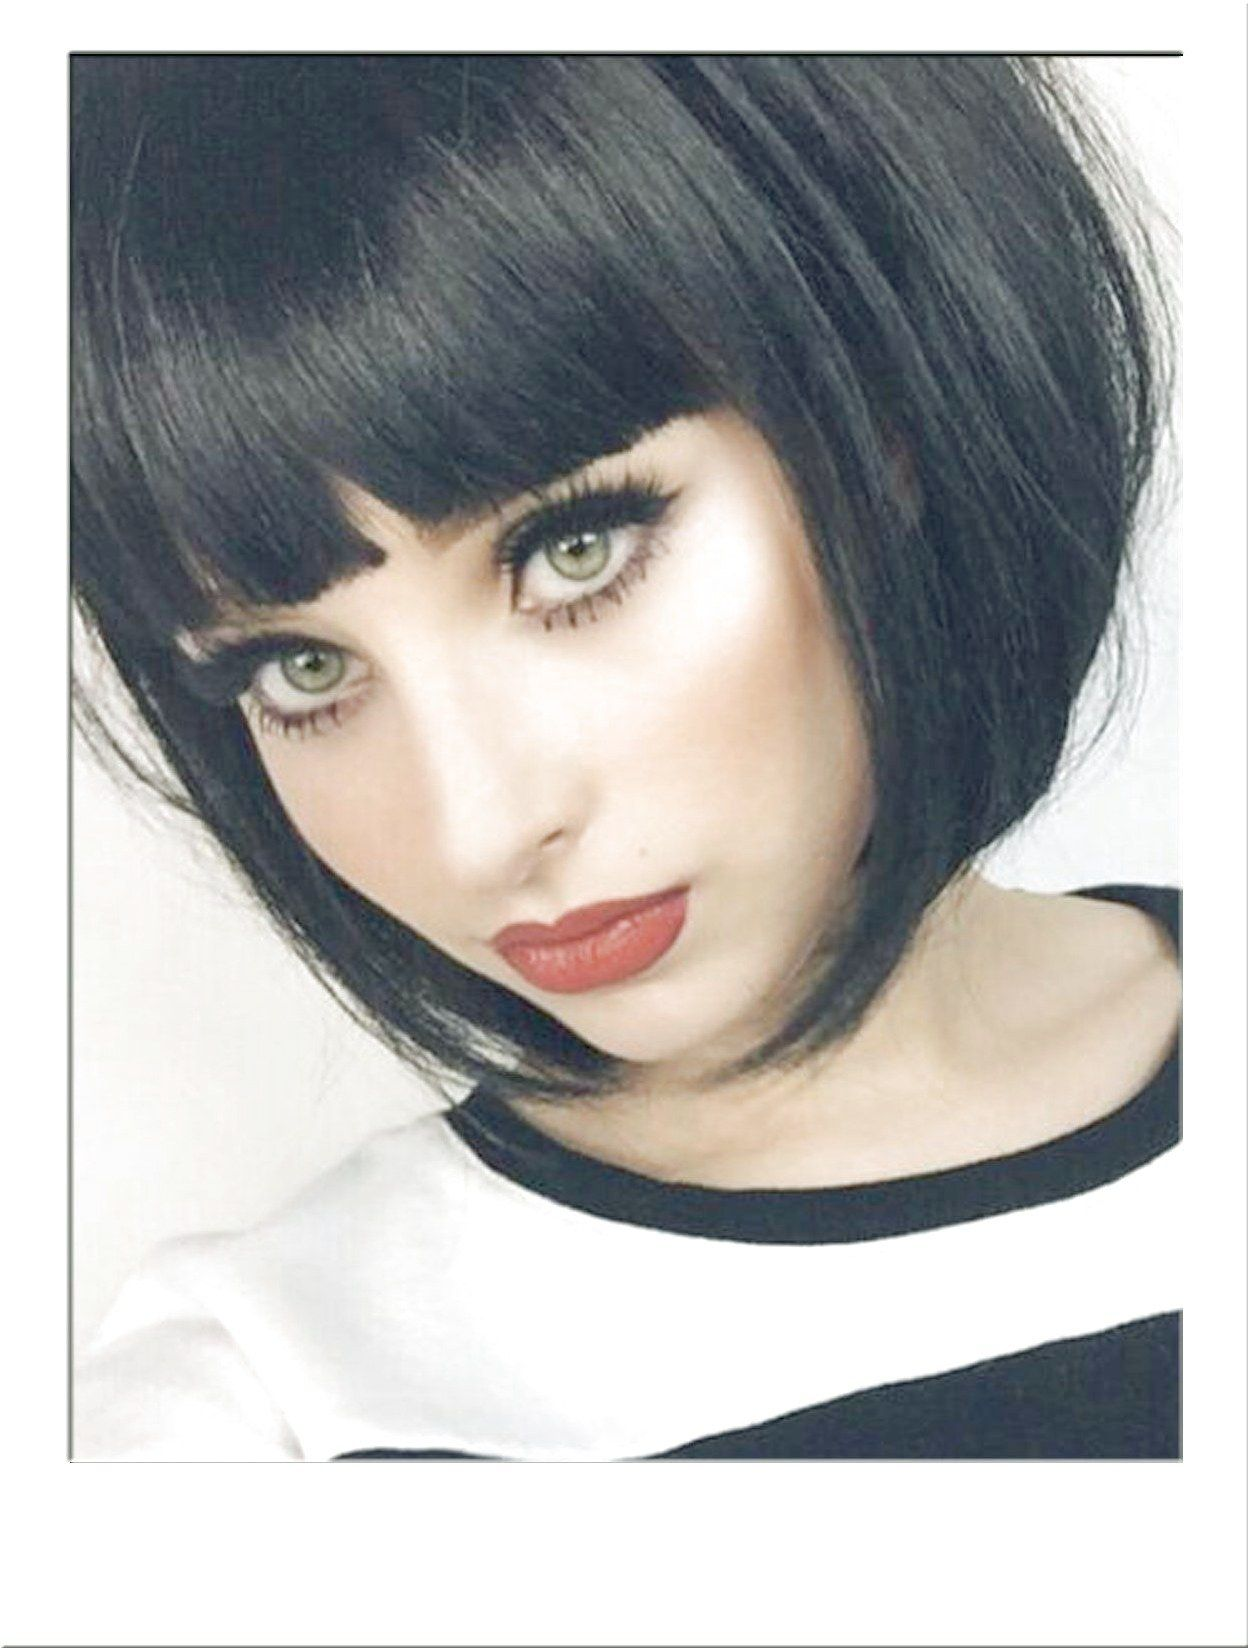 Black Blunt Bob Fashion Wig Short And Sharp Super Flattering Black Bob With Dynamic Blunt Hairstyles With Bangs Bob Hairstyles For Thick Curly Bob Hairstyles